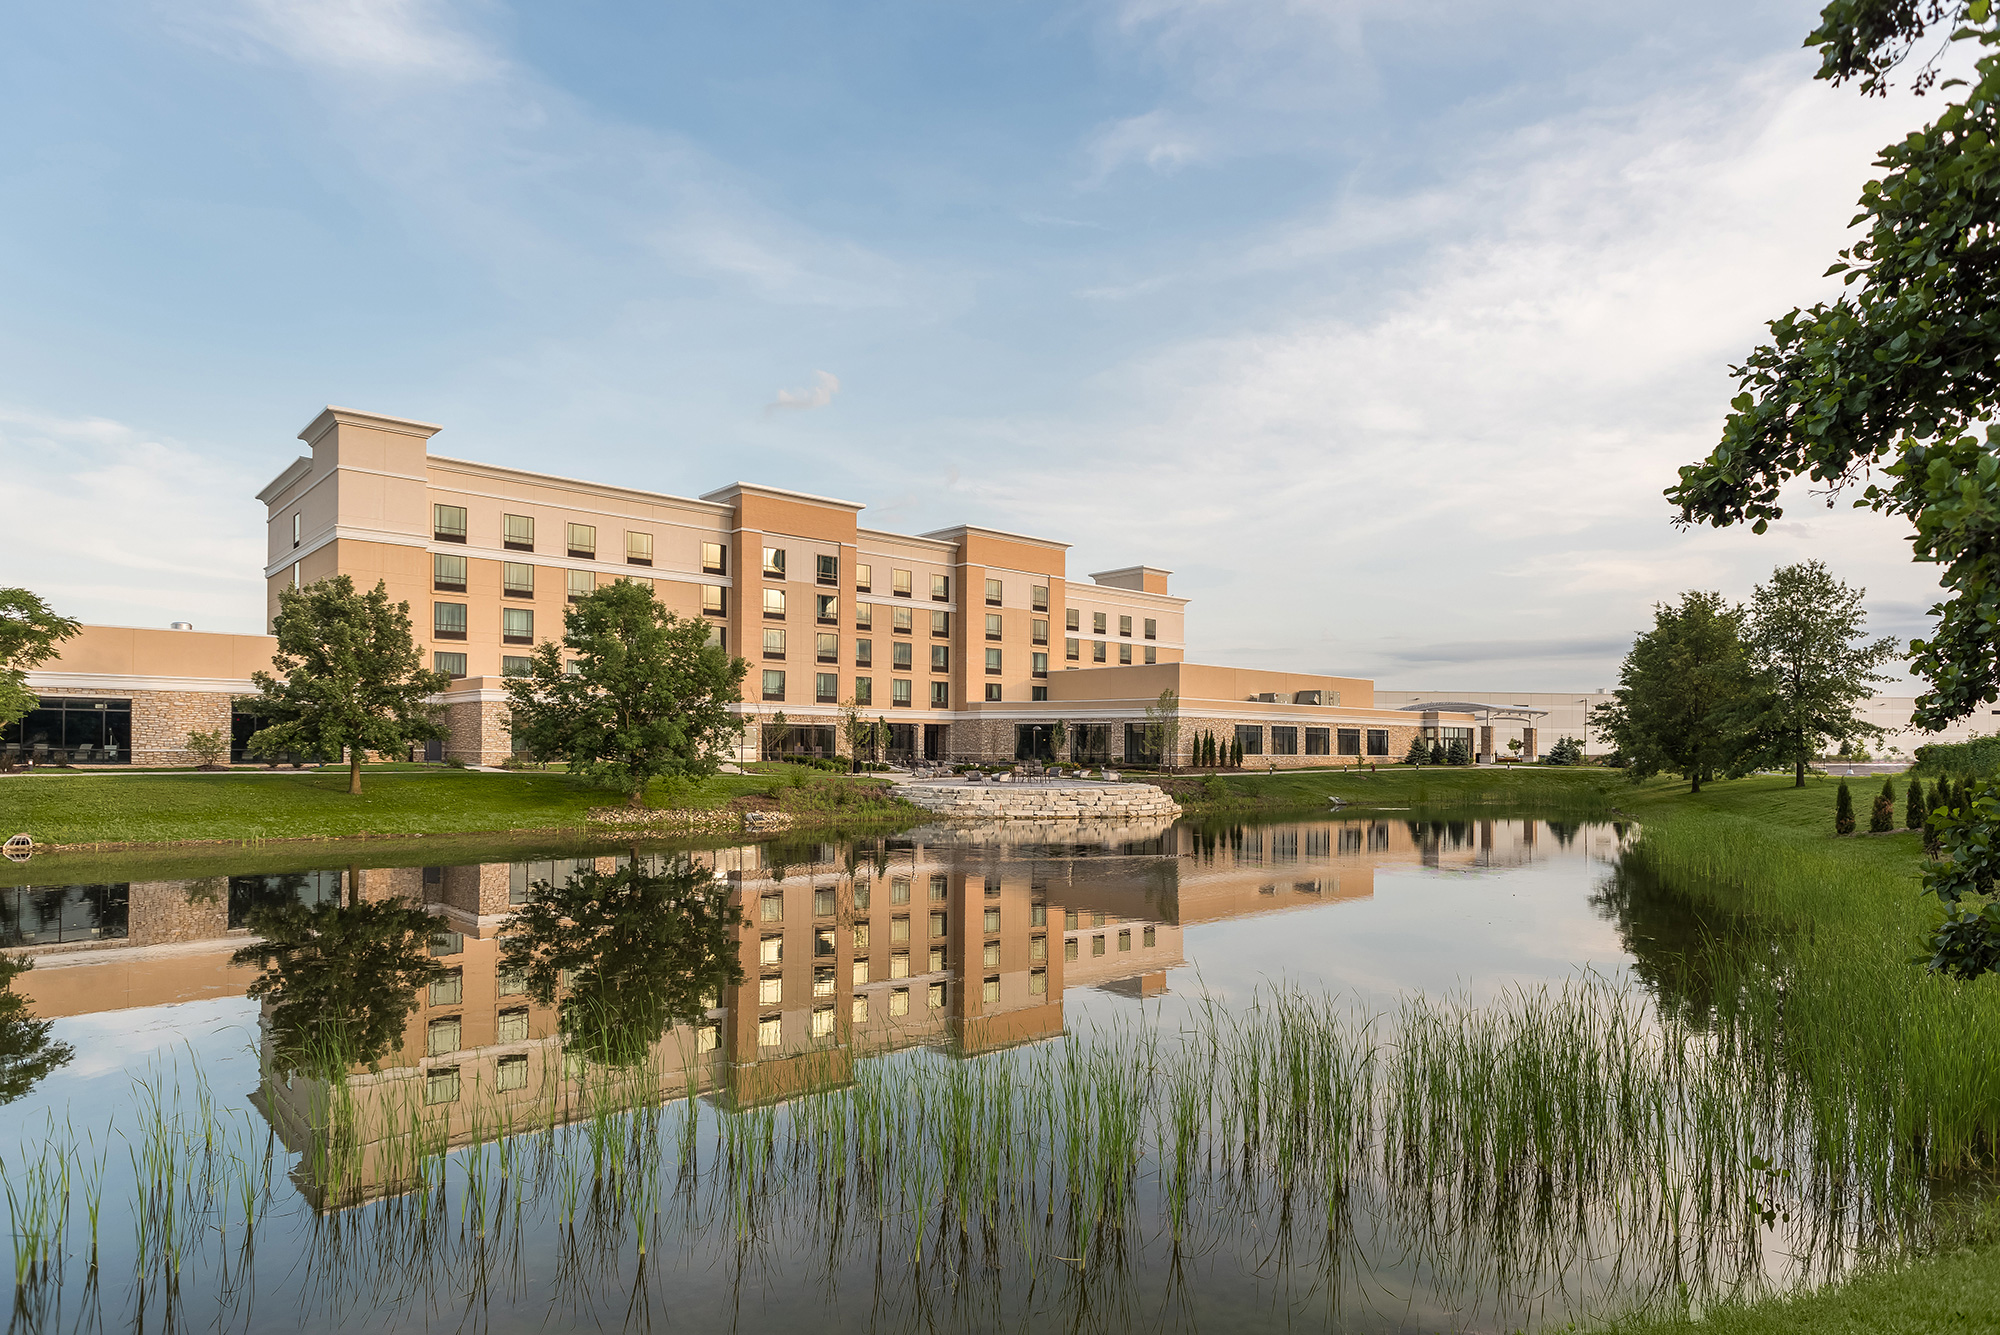 Architectural Photography, Commercial Photography, Real Estate Photography